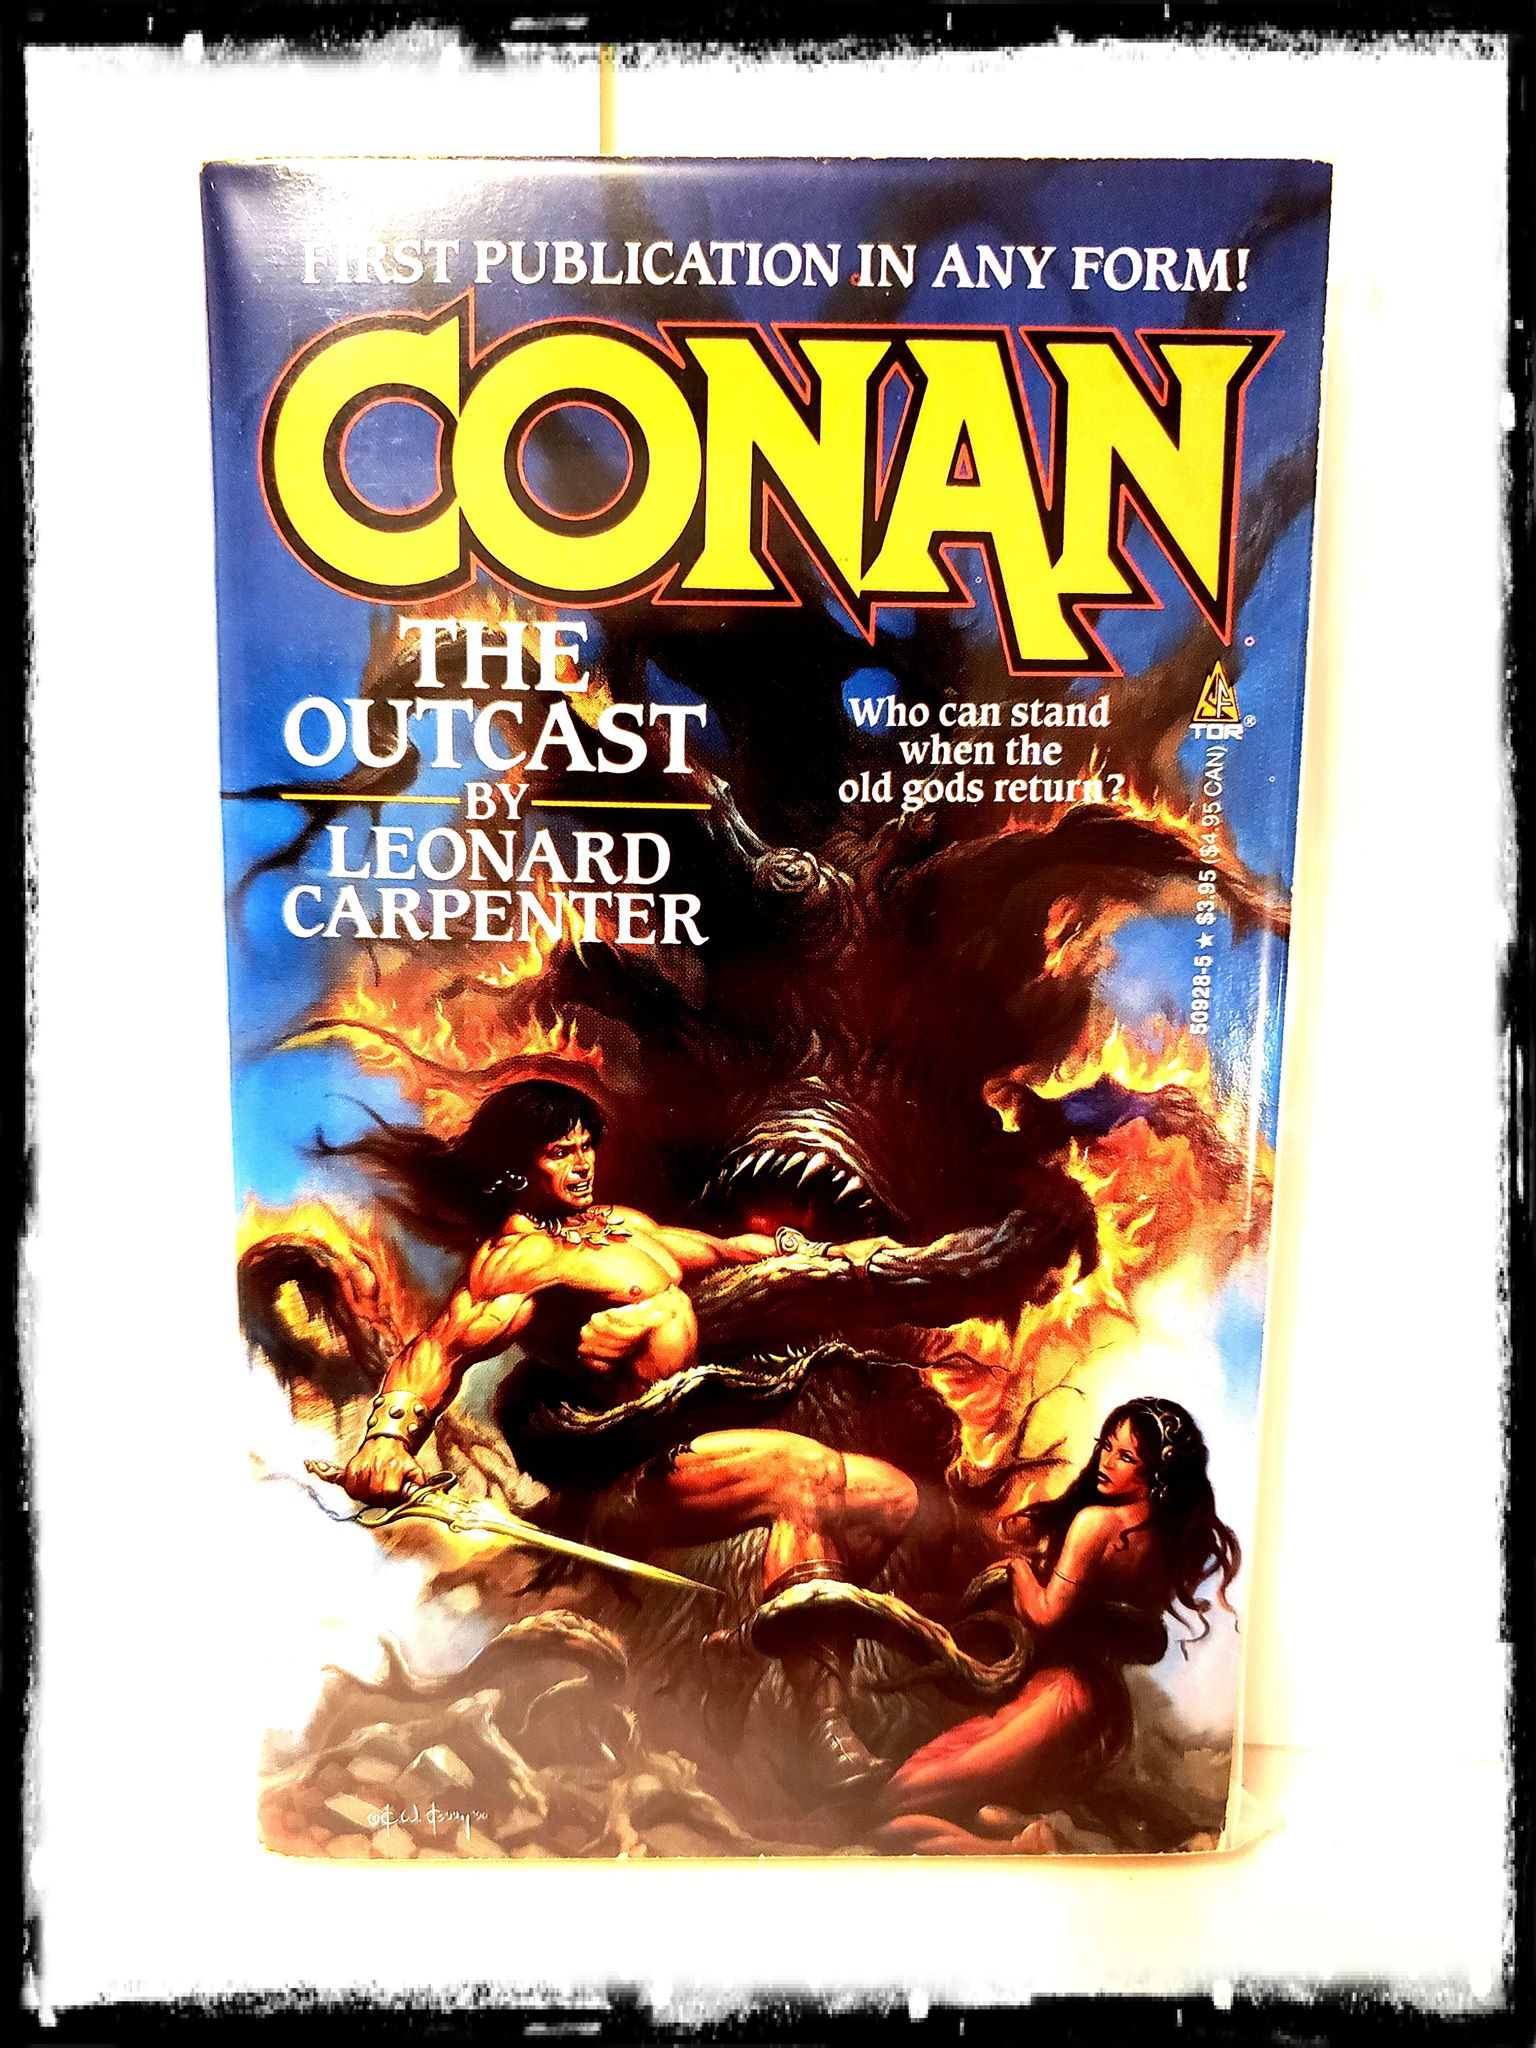 CONAN - THE TRIUMPHANT (1991 - LEONARD CARPENTER) PAPERBACK